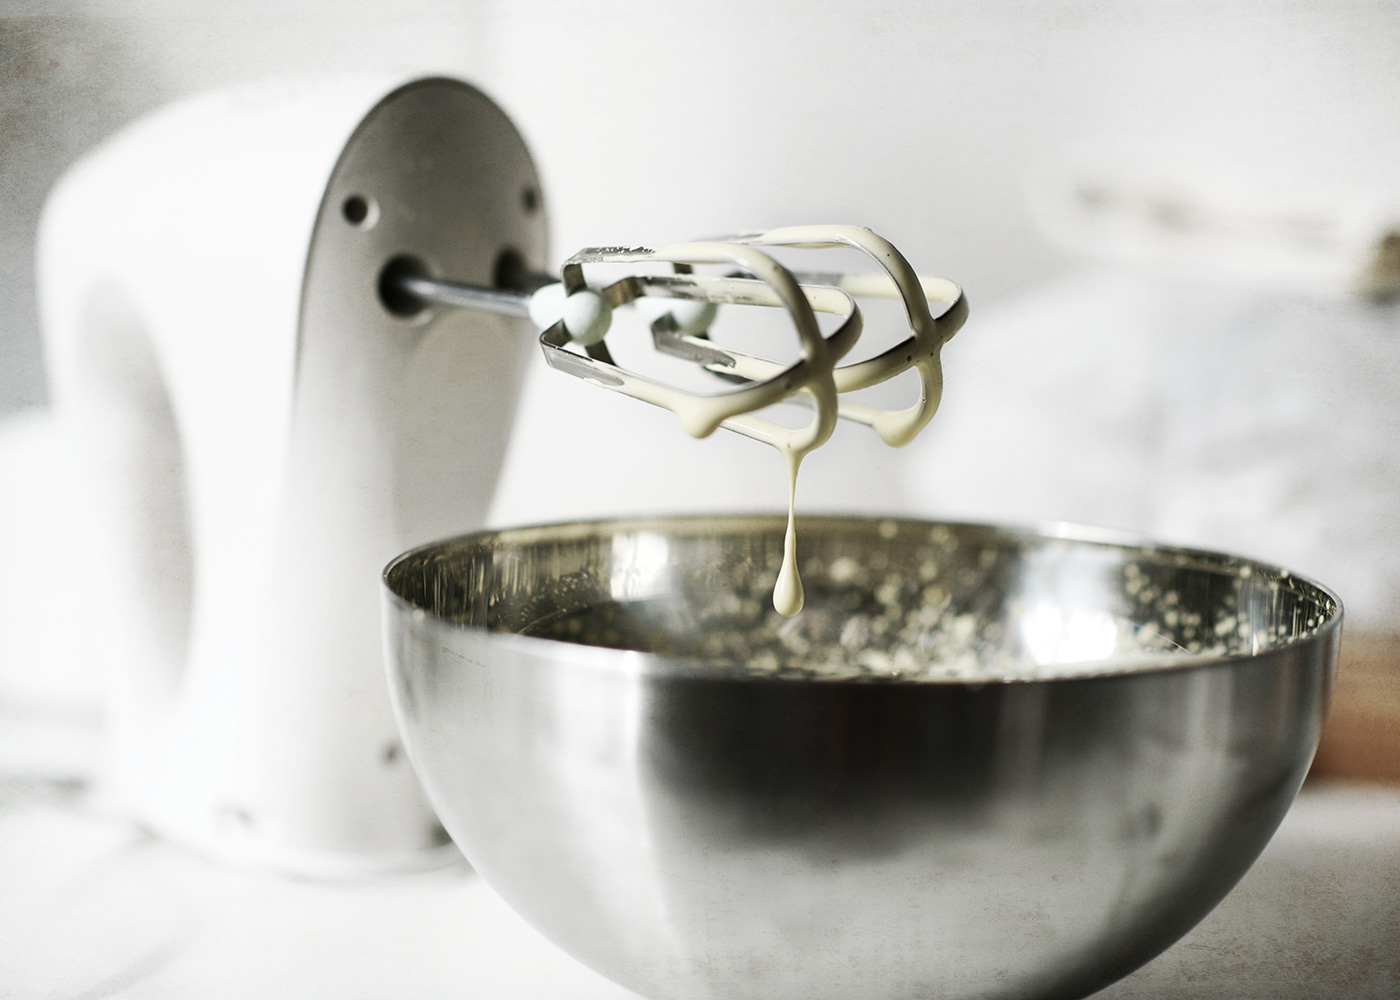 Tools and Gadgets for a Healthy Kitchen